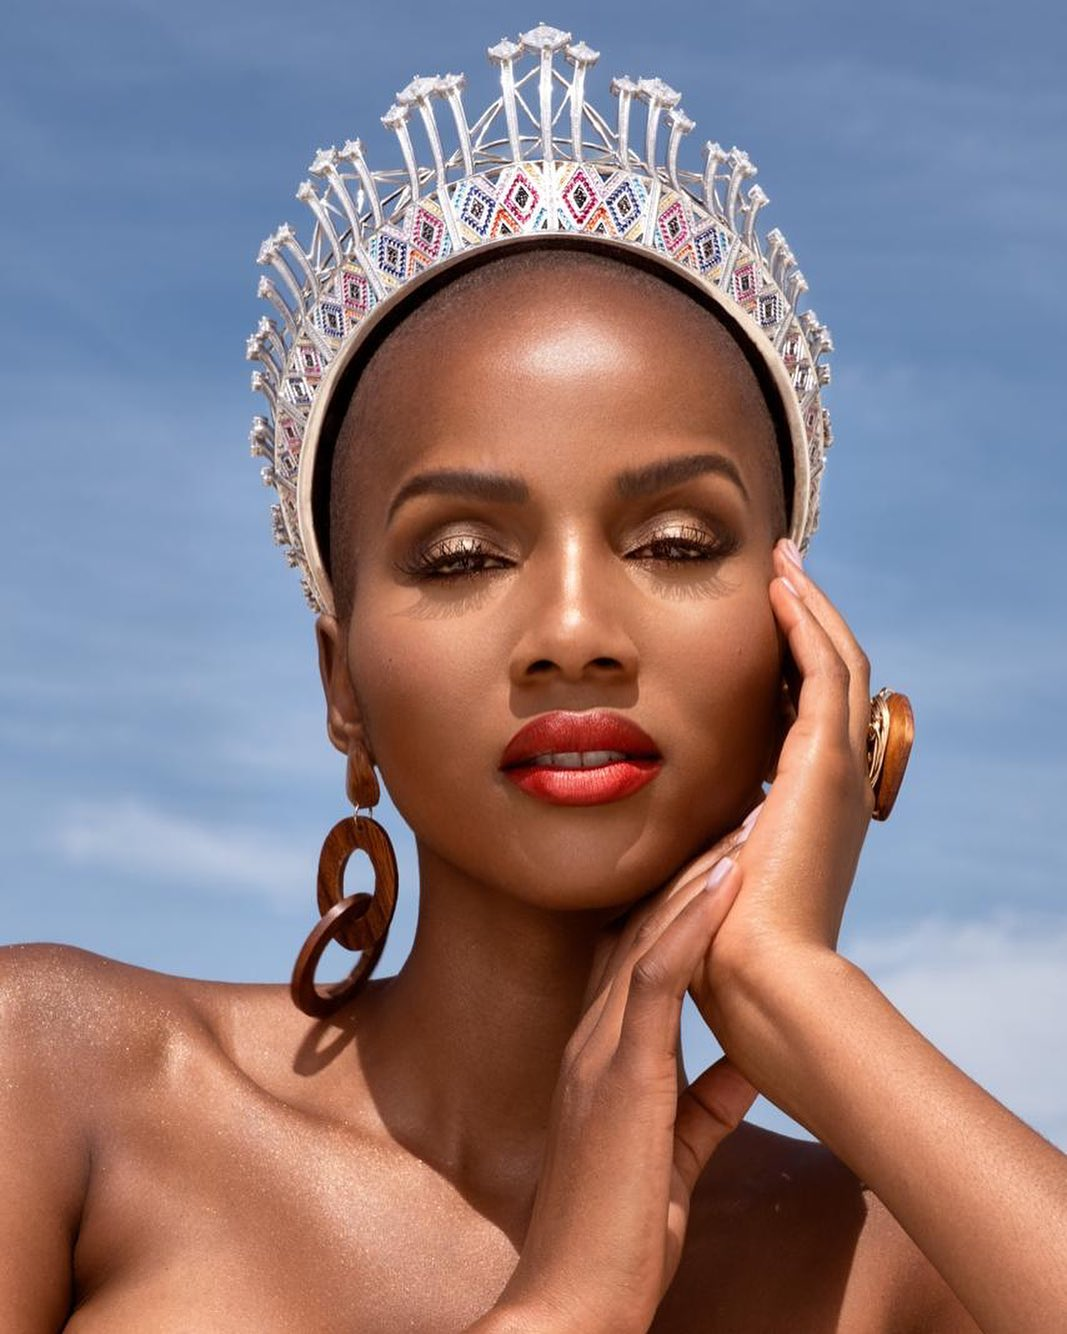 valentine-day-makeup-looks-and-ideas-on-miss-south-africa